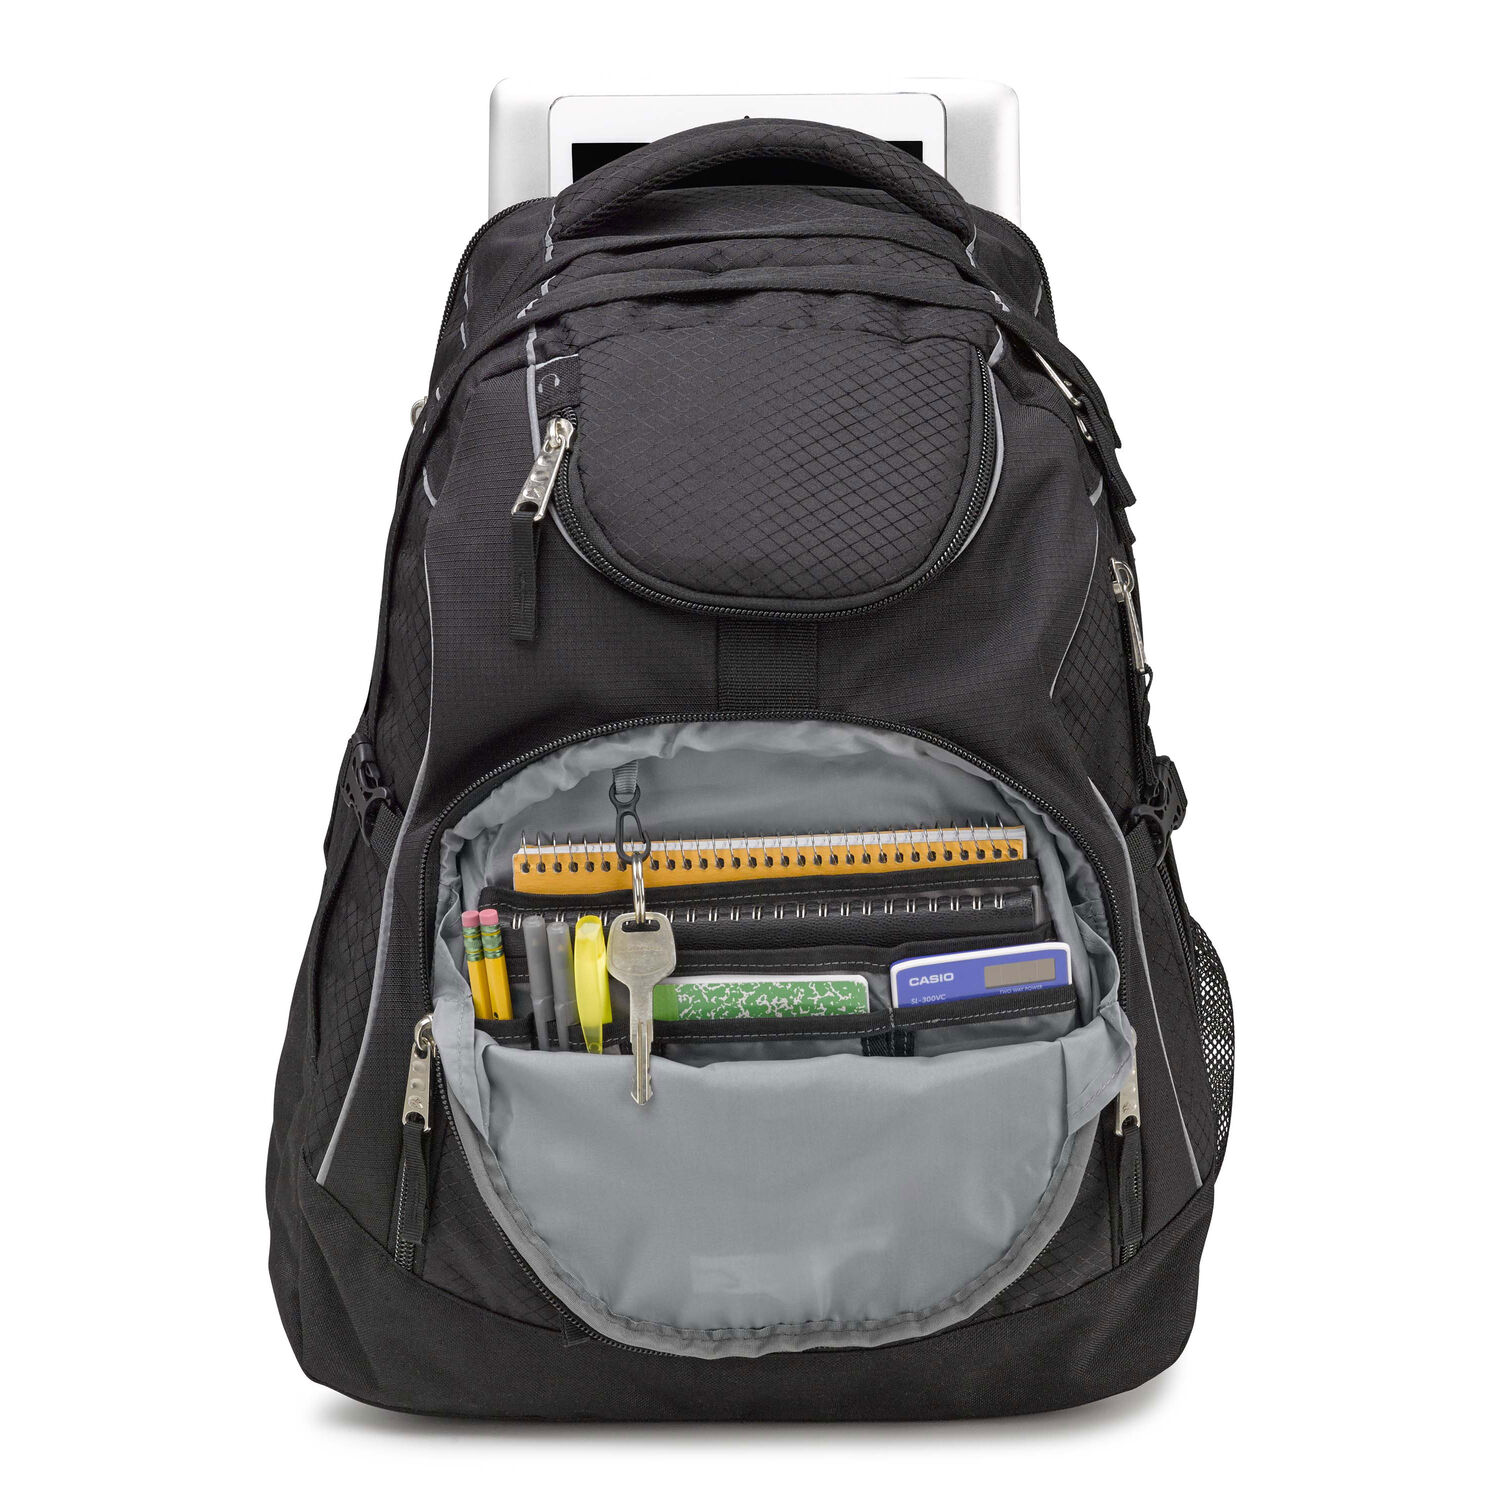 708b3e9c5 High Sierra Access Backpack in the color Black/Black.